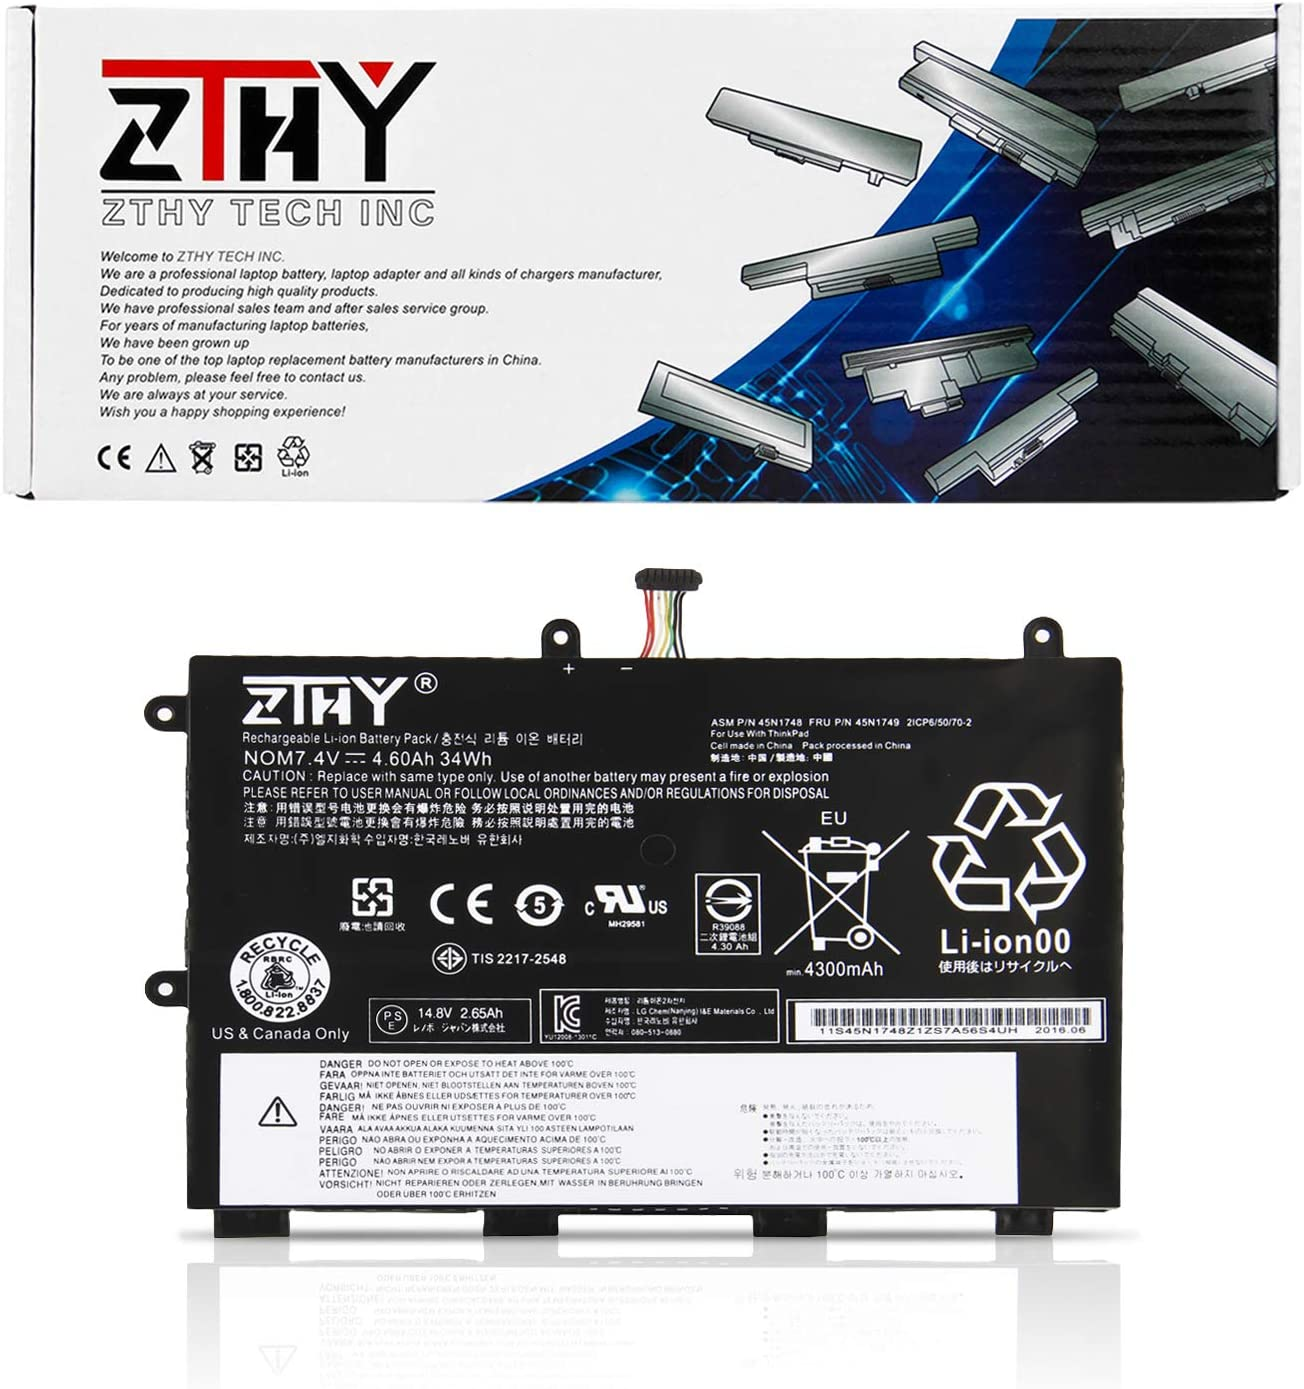 ZTHY 34WH 11E Laptop Battery Replacement for Lenovo ThinkPad Yoga 11e Series Notebook 45N1748 45N1749 45N1750 45N1751 7.4V 4600mAh